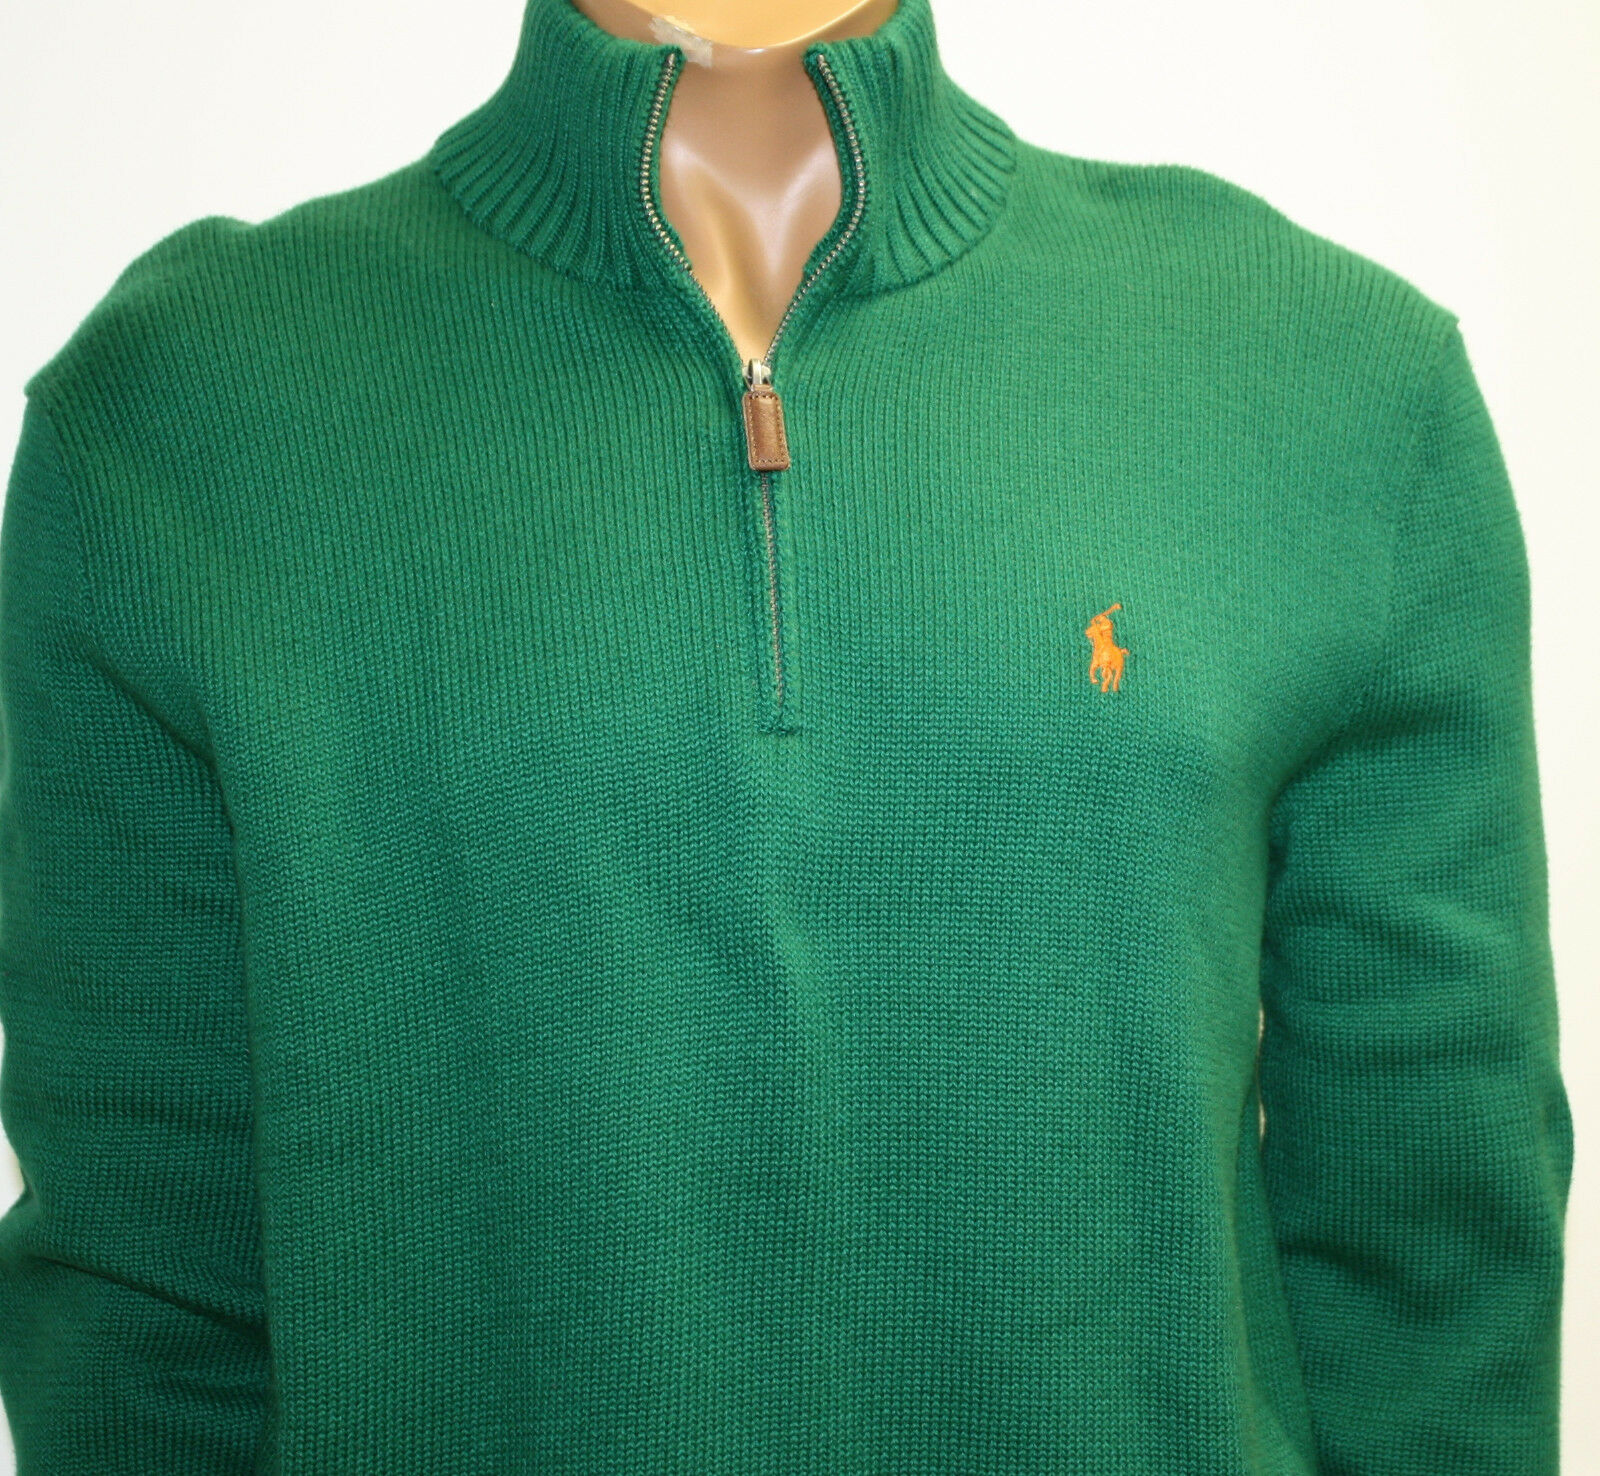 Polo Ralph Lauren Sweater Green Cotton Zip Knit Sweater orange Pony Logo NWTS